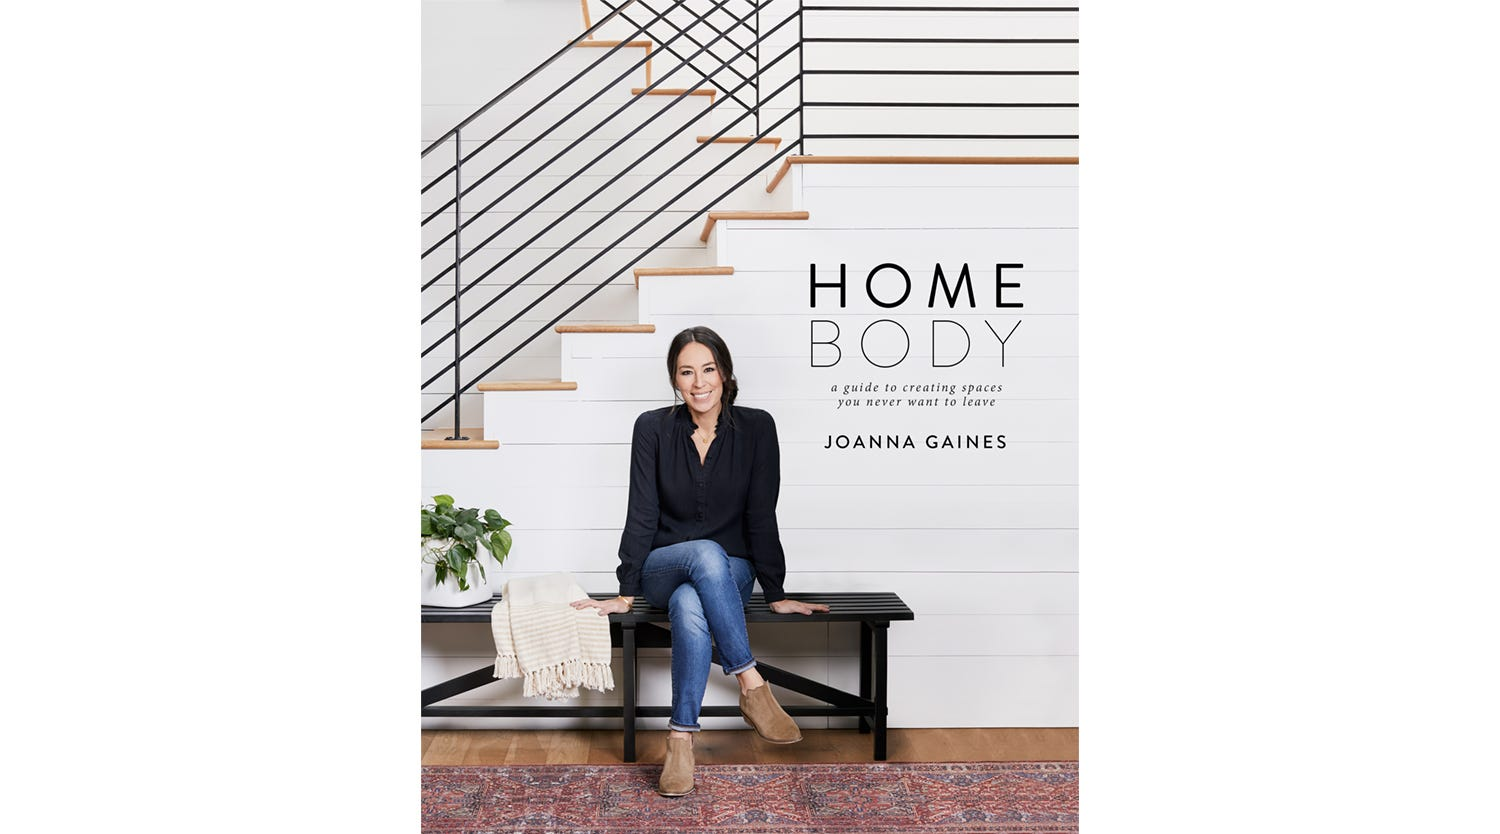 Homebody, by Joanna Gaines